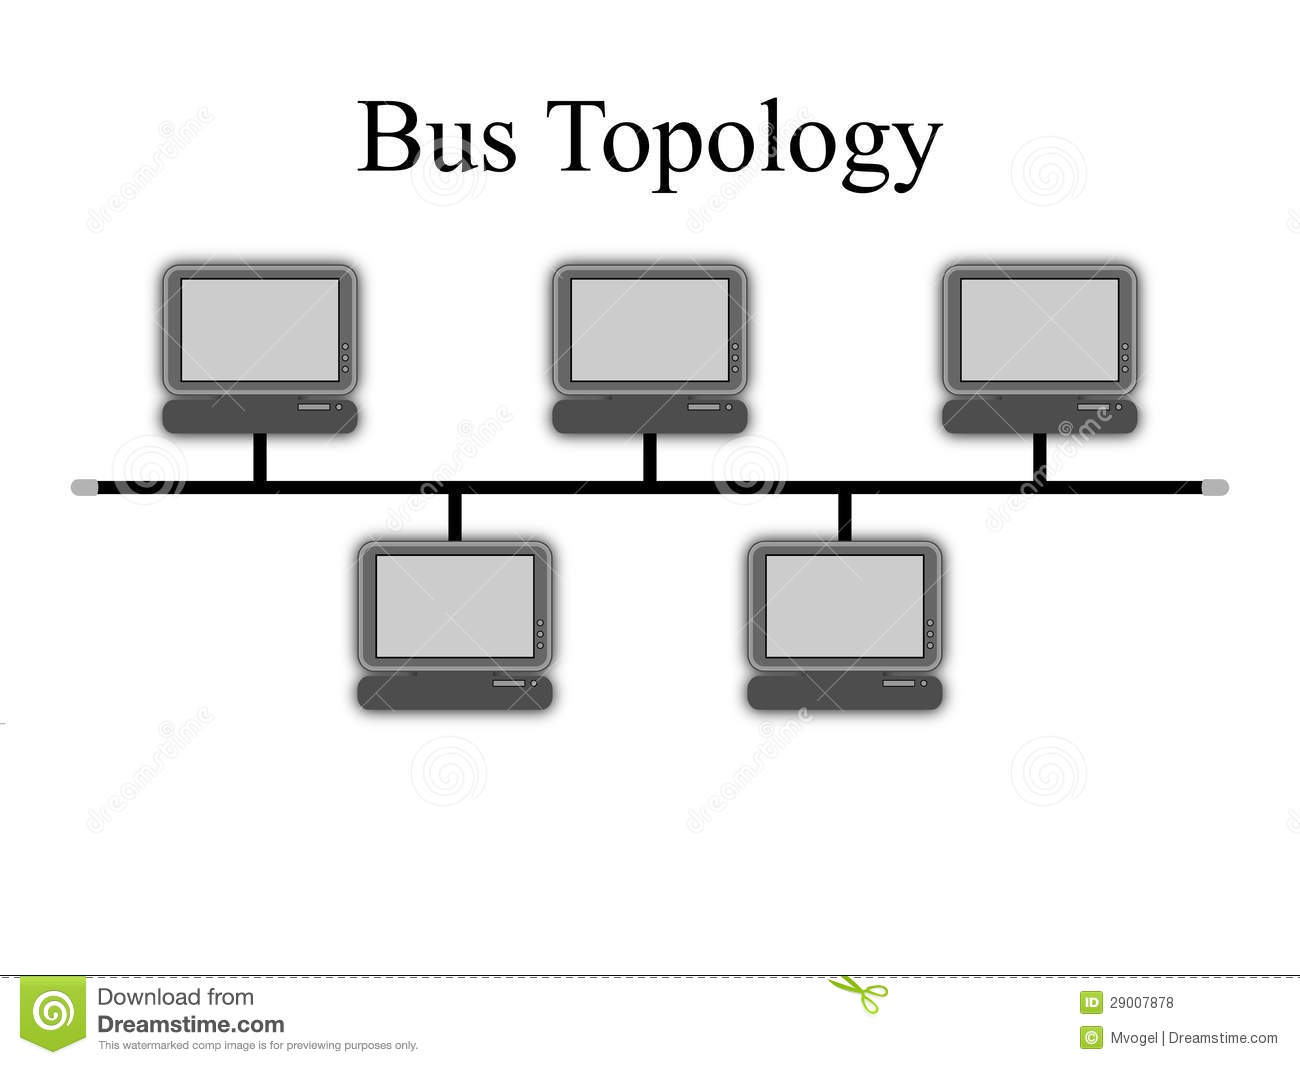 bus topology A network topology is the arrangement with which computer systems or network devices are connected to each other in case of bus topology.